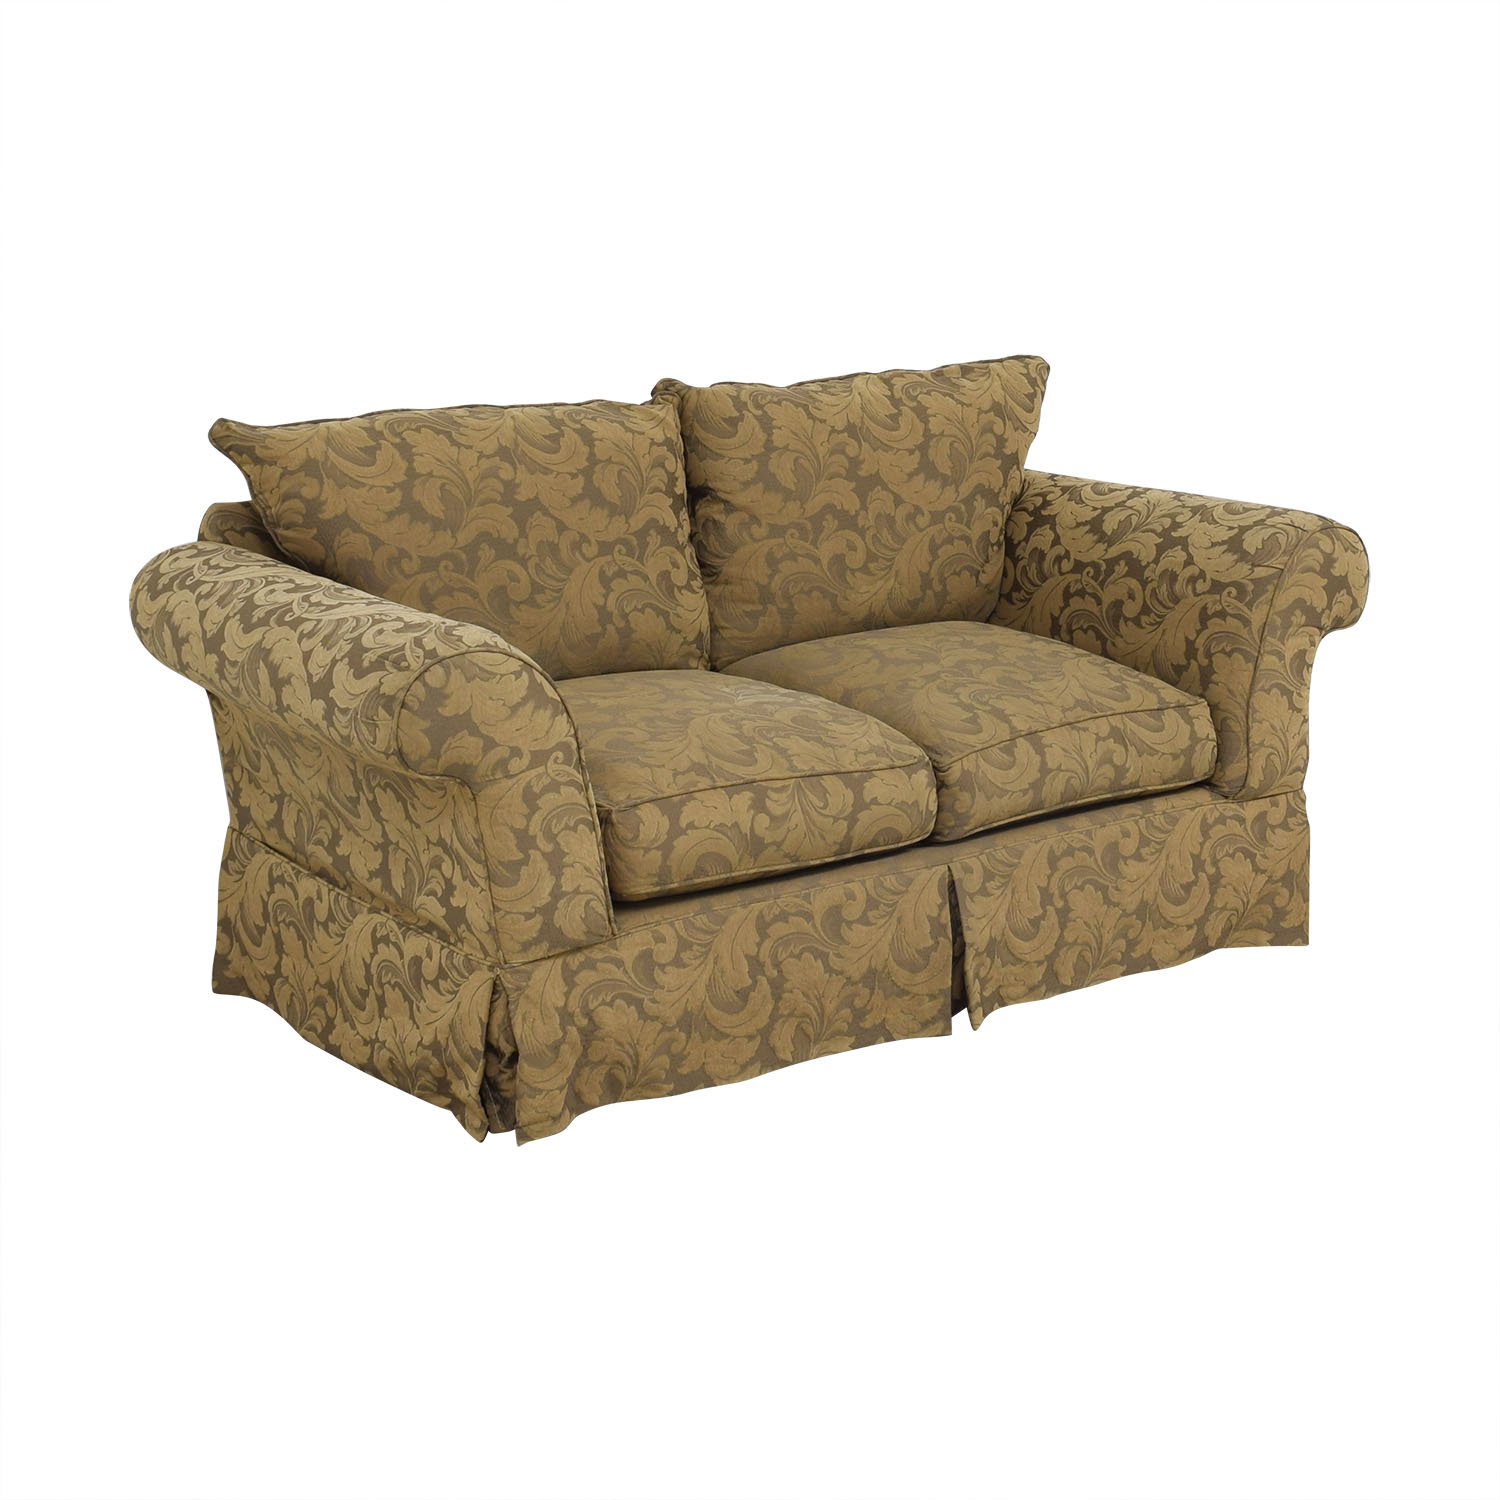 Hickory Hill Hickory Hill Loveseat price